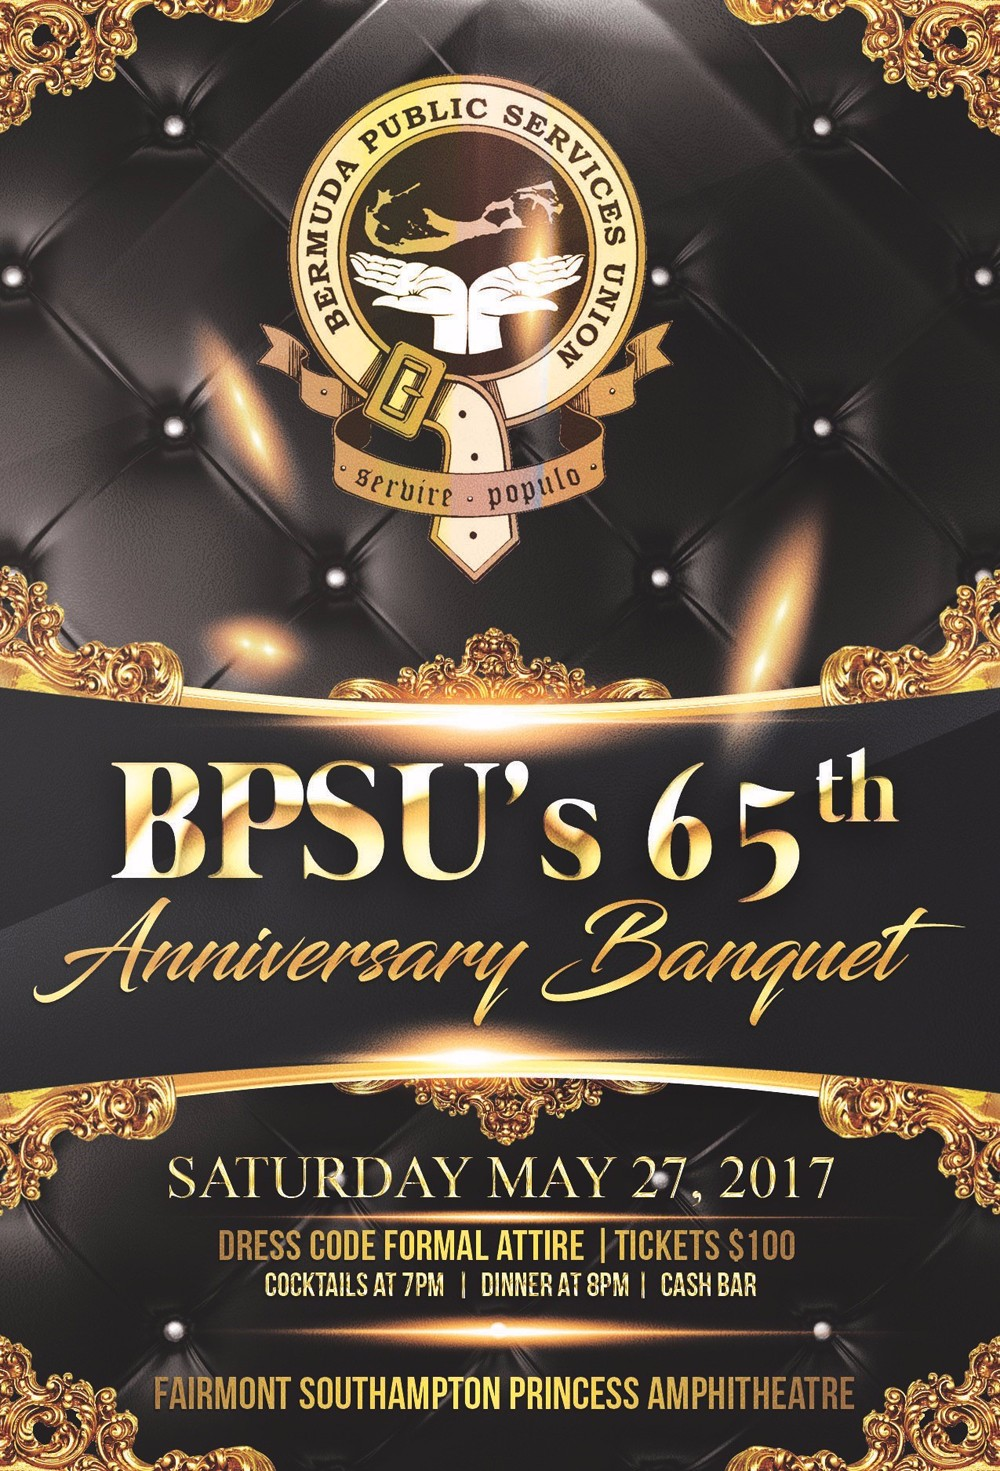 65th Anniversary - Banquet Bermuda May 17 2017